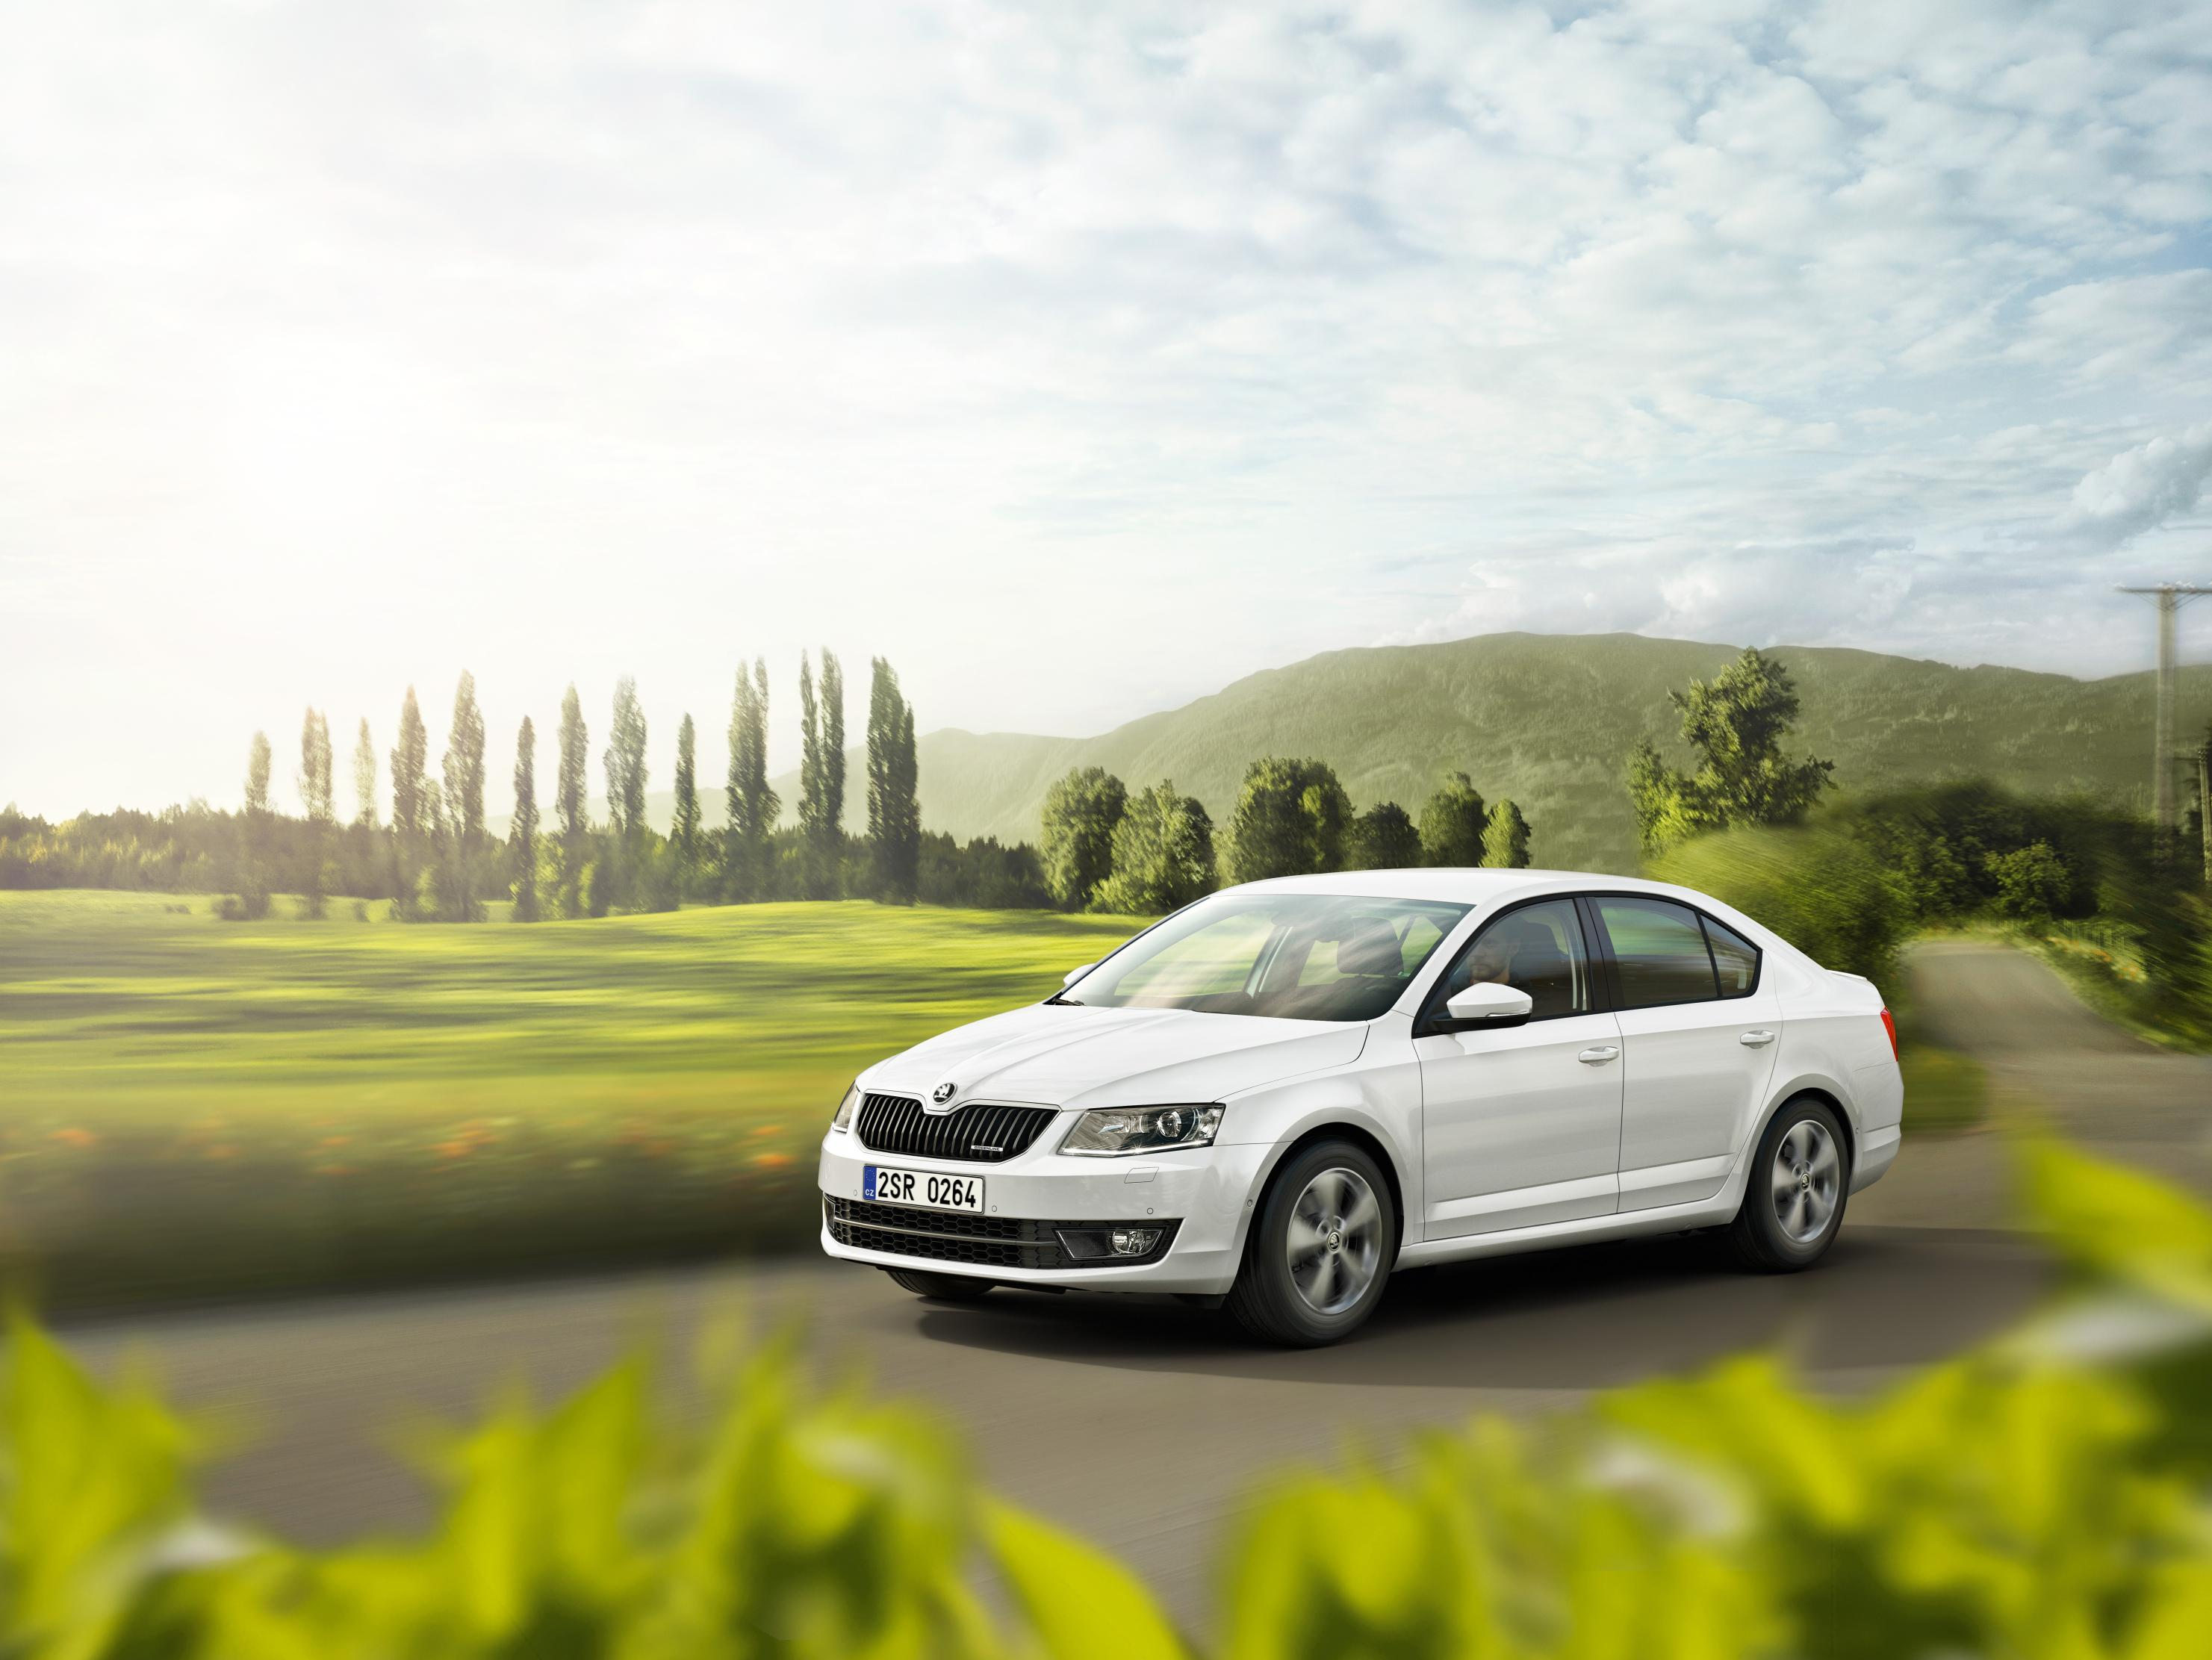 Skoda Octavia Estate driving next to green fields